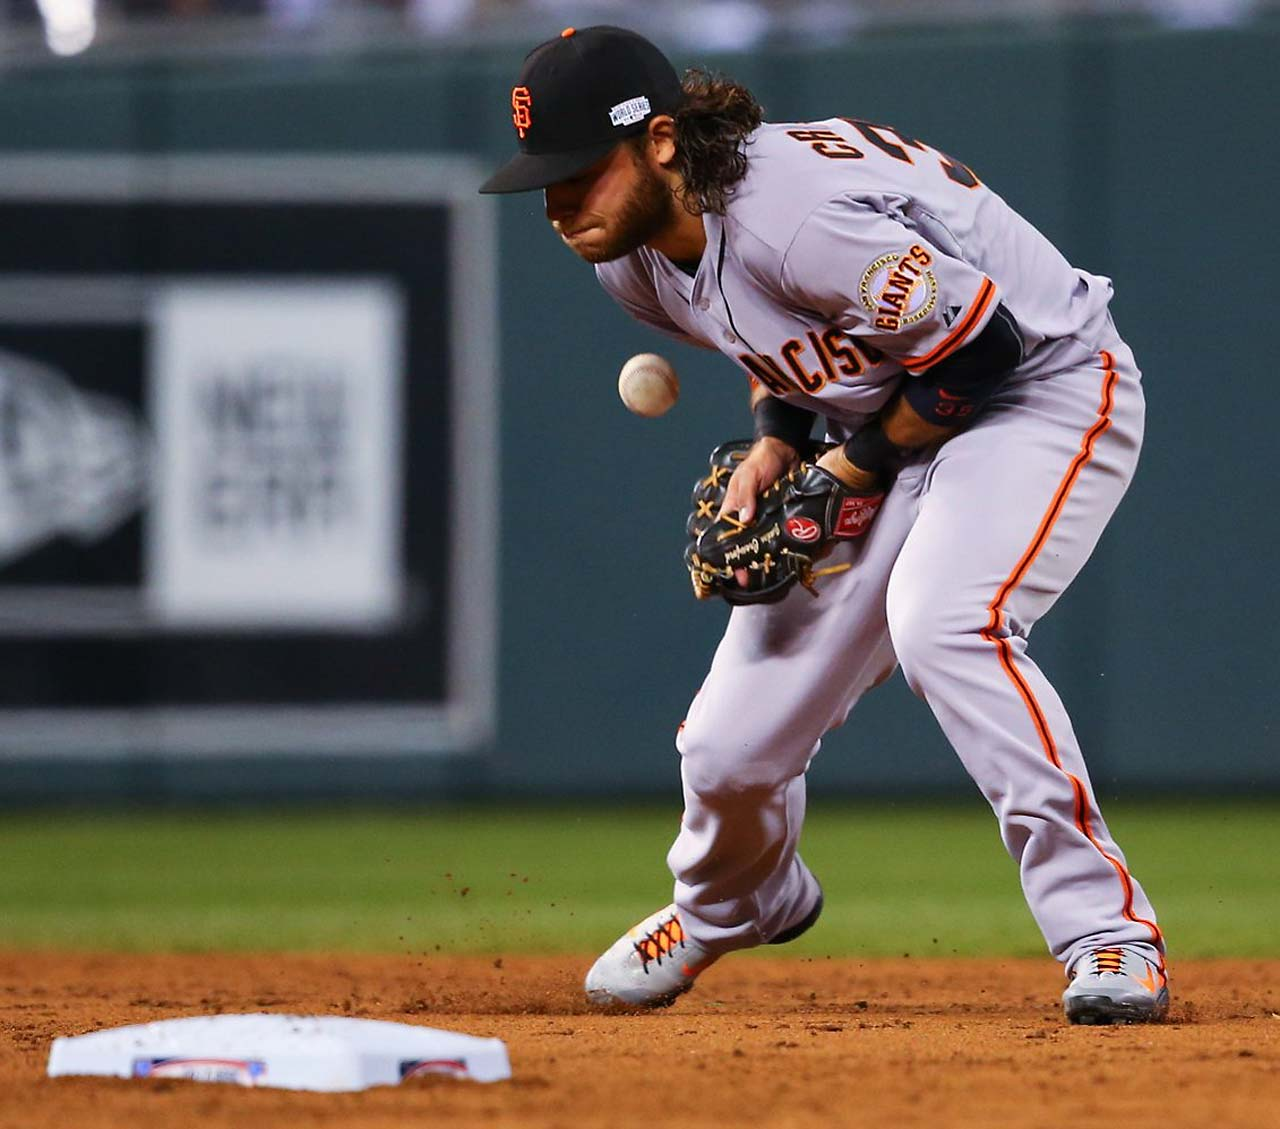 Shortstop Brandon Crawford was charged with an error on this play.